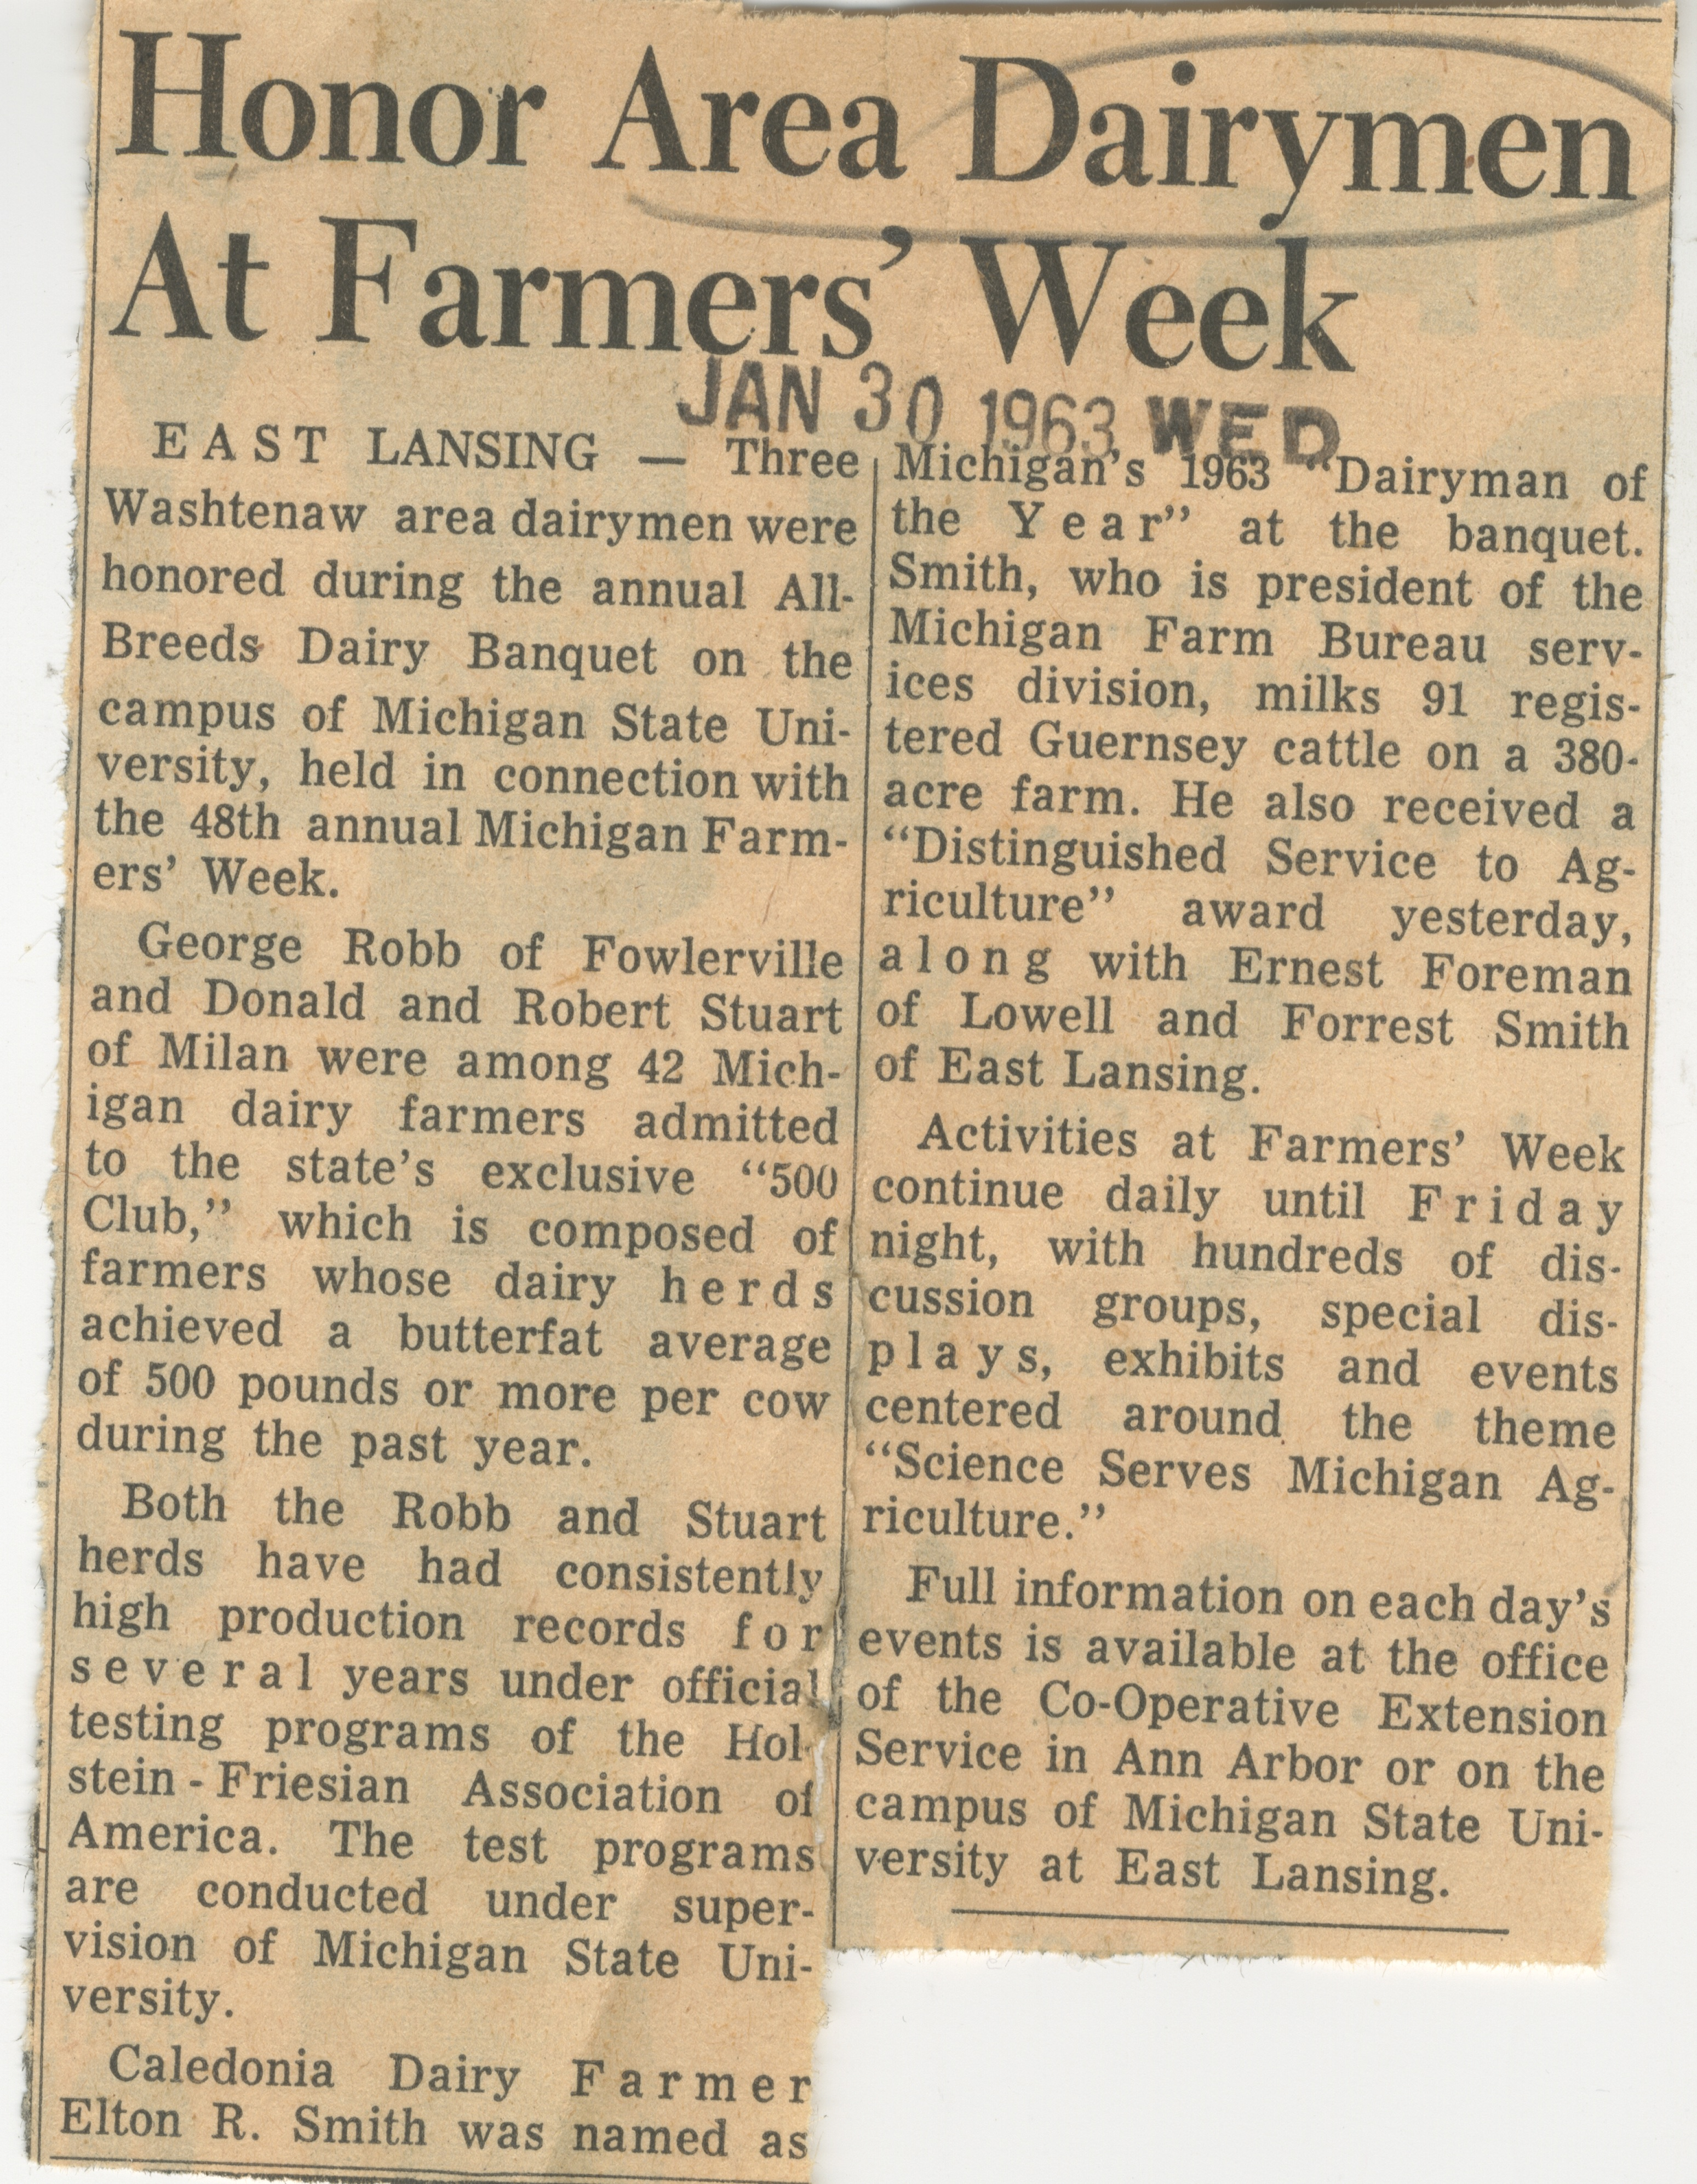 Honor Area Dairymen At Farmer's Week image